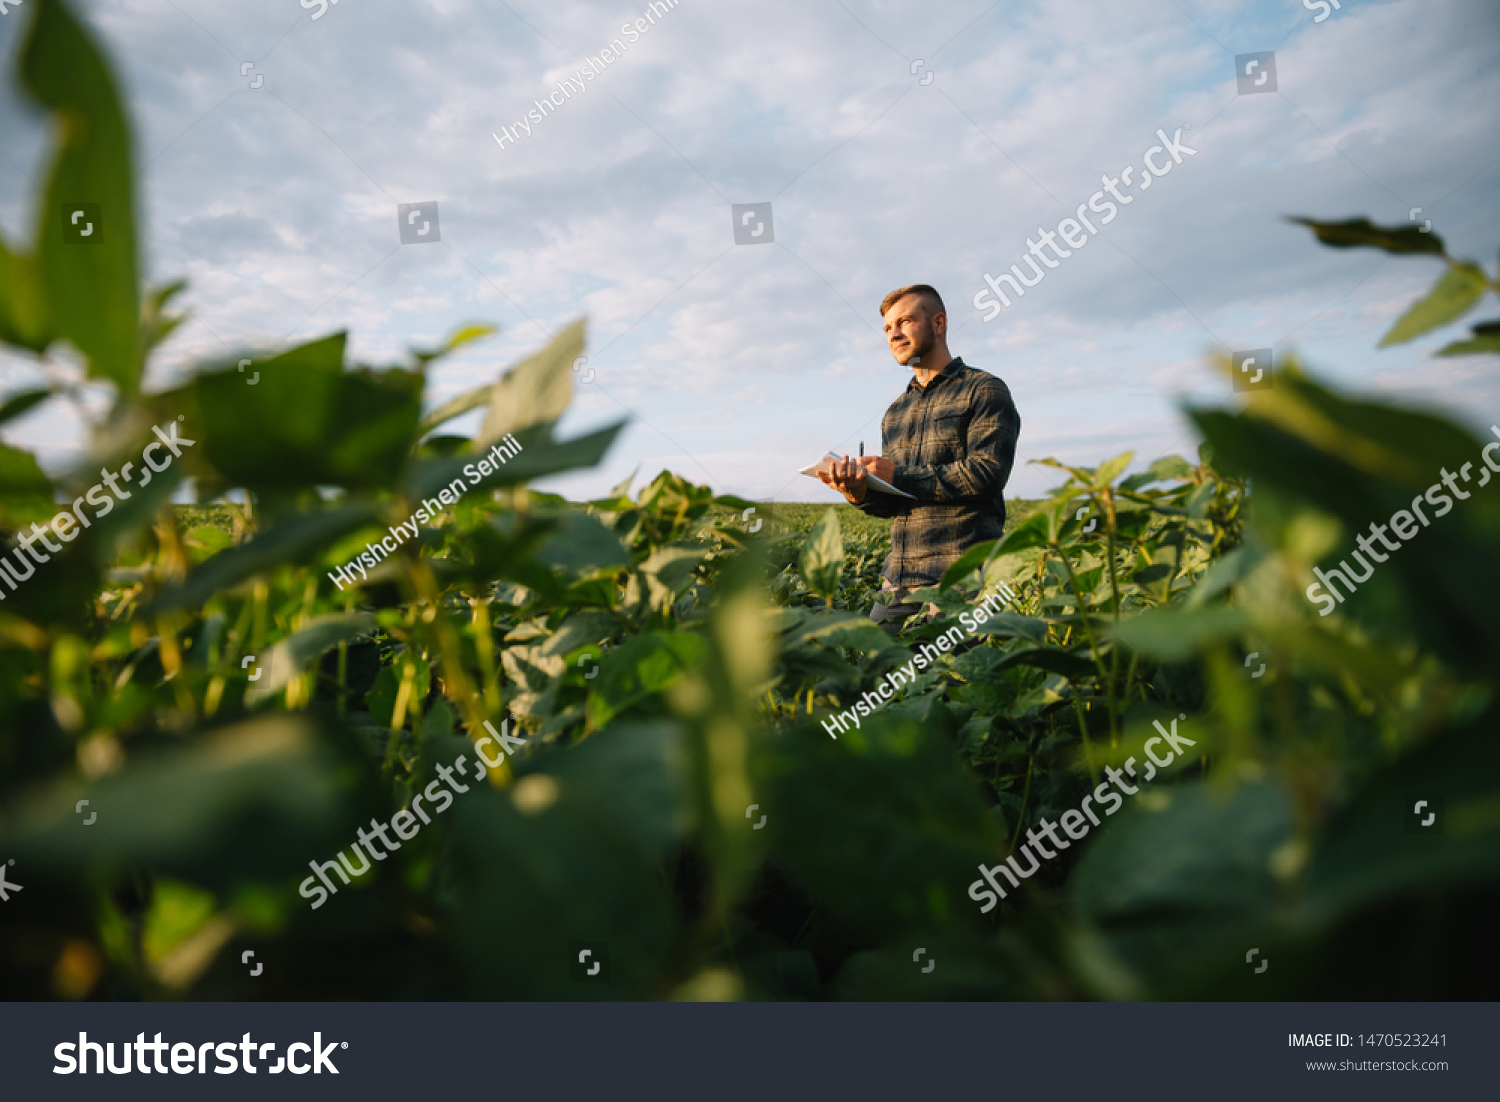 Agronomist inspecting soya bean crops growing in the farm field. Agriculture production concept. young agronomist examines soybean crop on field in summer. Farmer on soybean field #1470523241